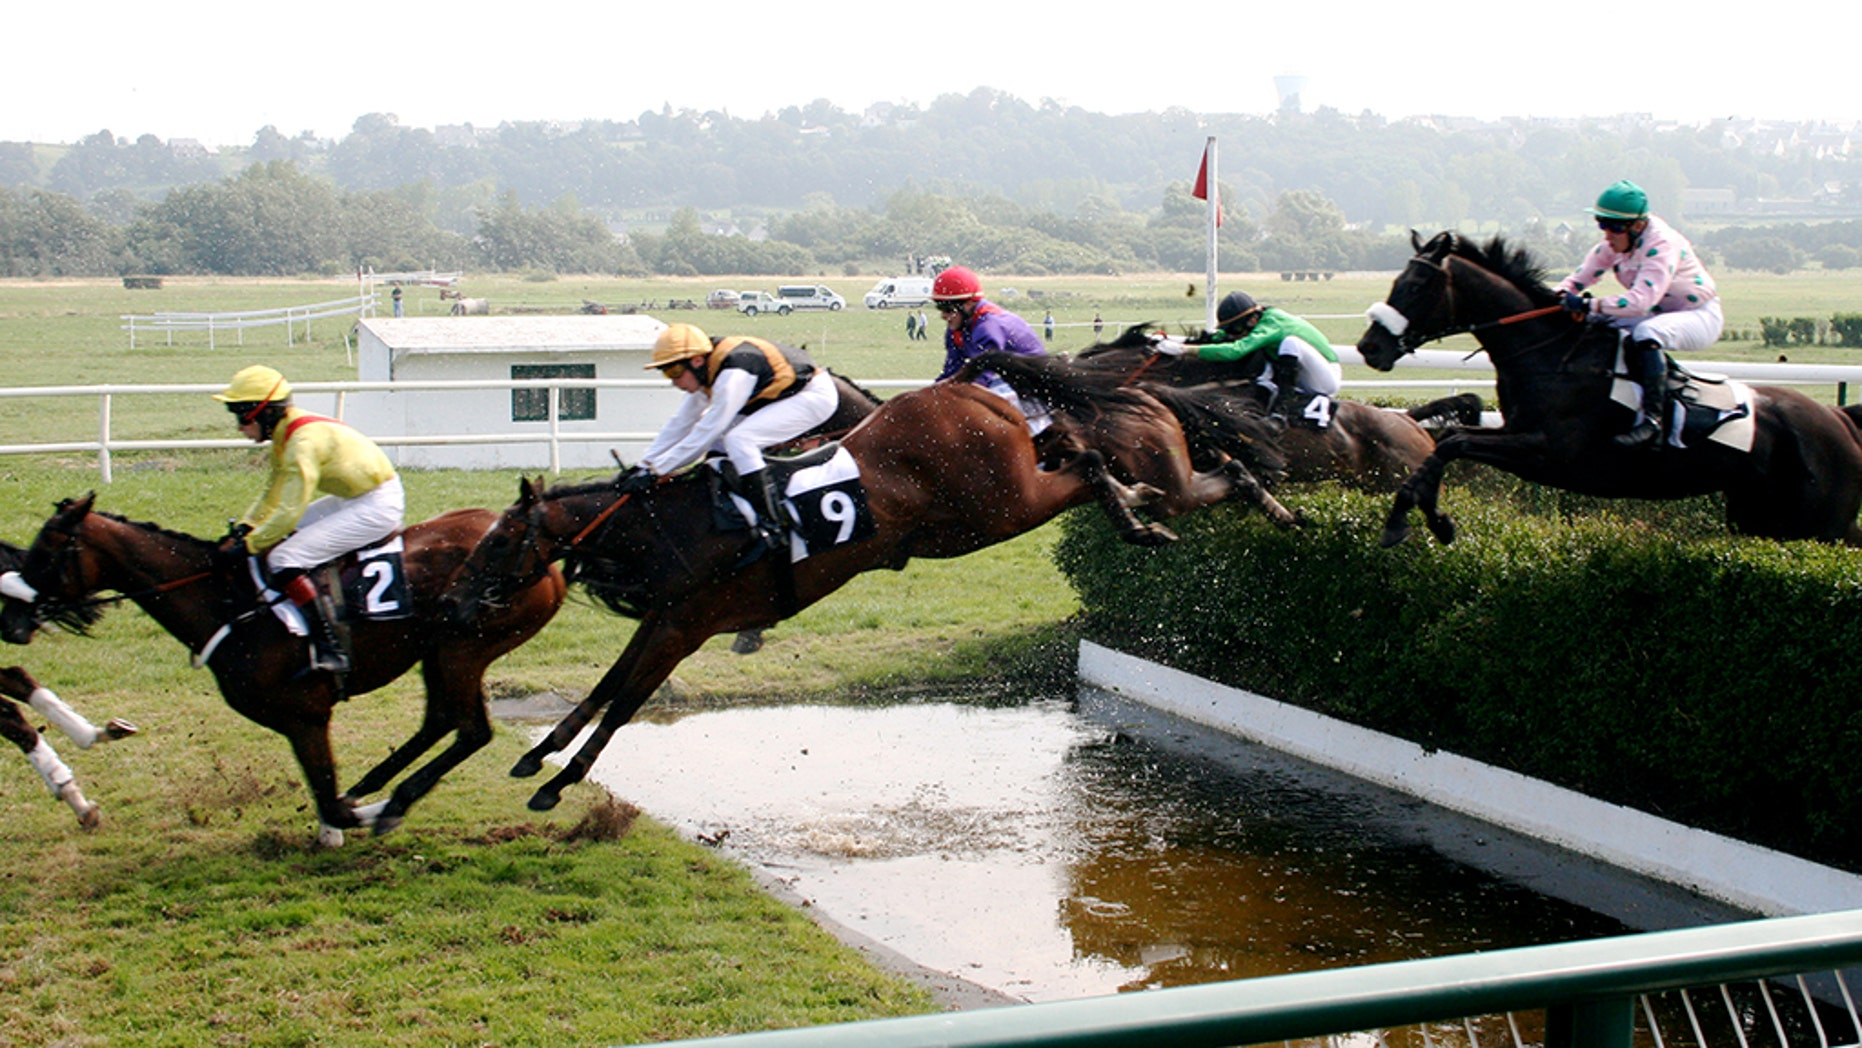 Photo taken during the running of a steeplechase race.